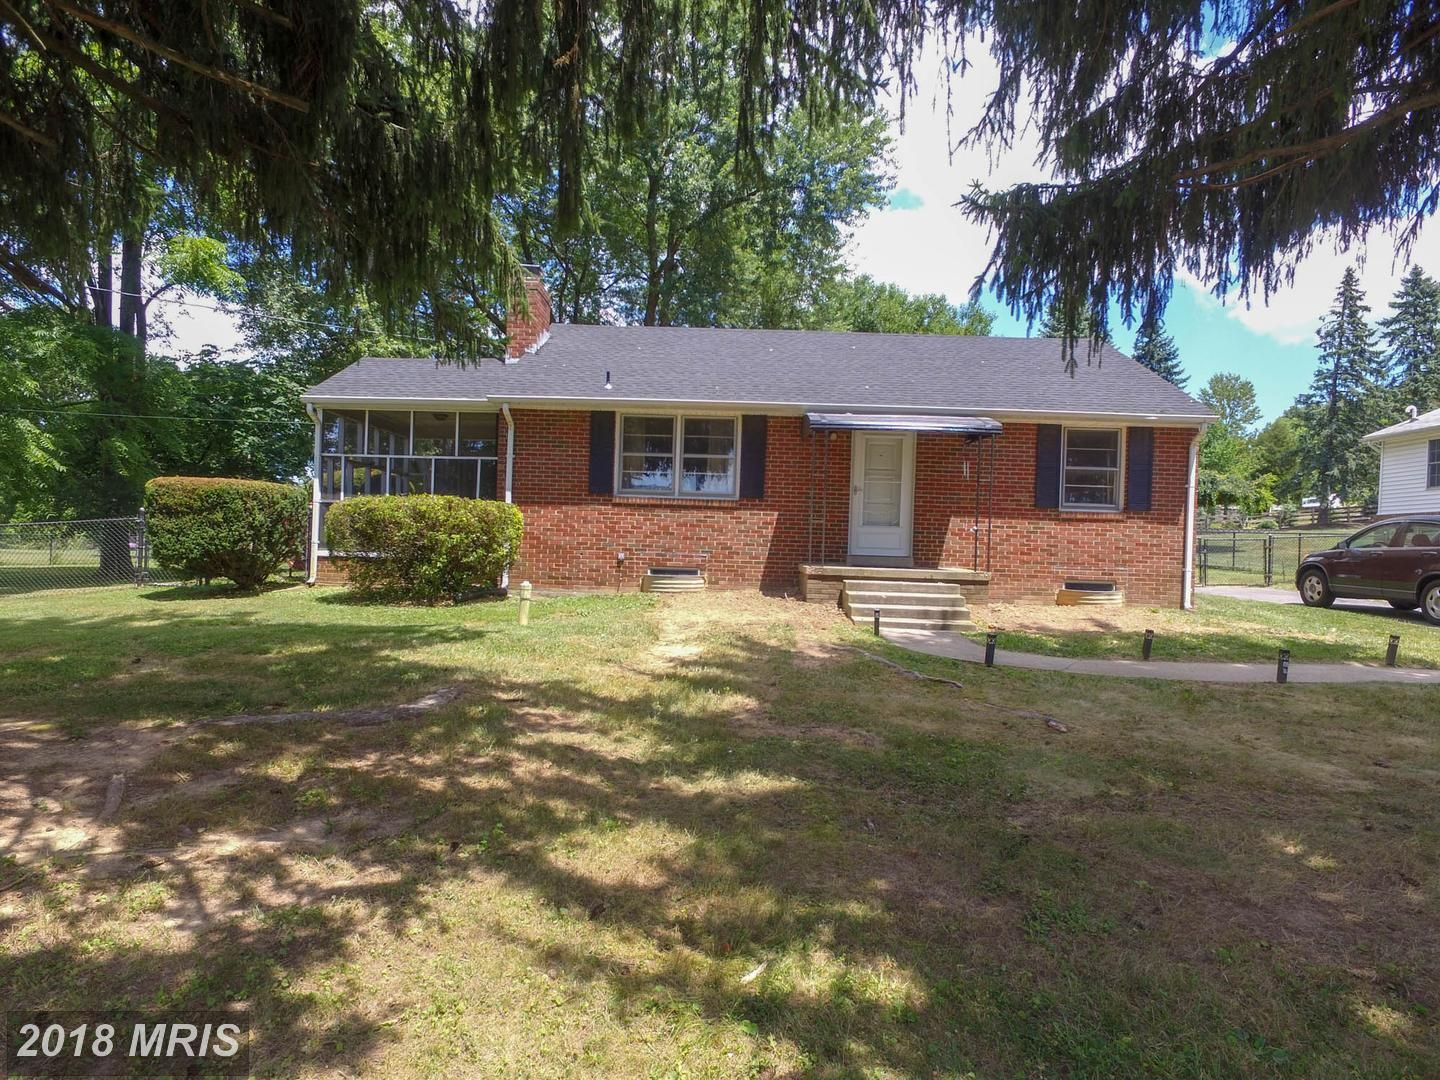 10707 Bethesda Church Rd, Damascus, MD 20872 | Trulia